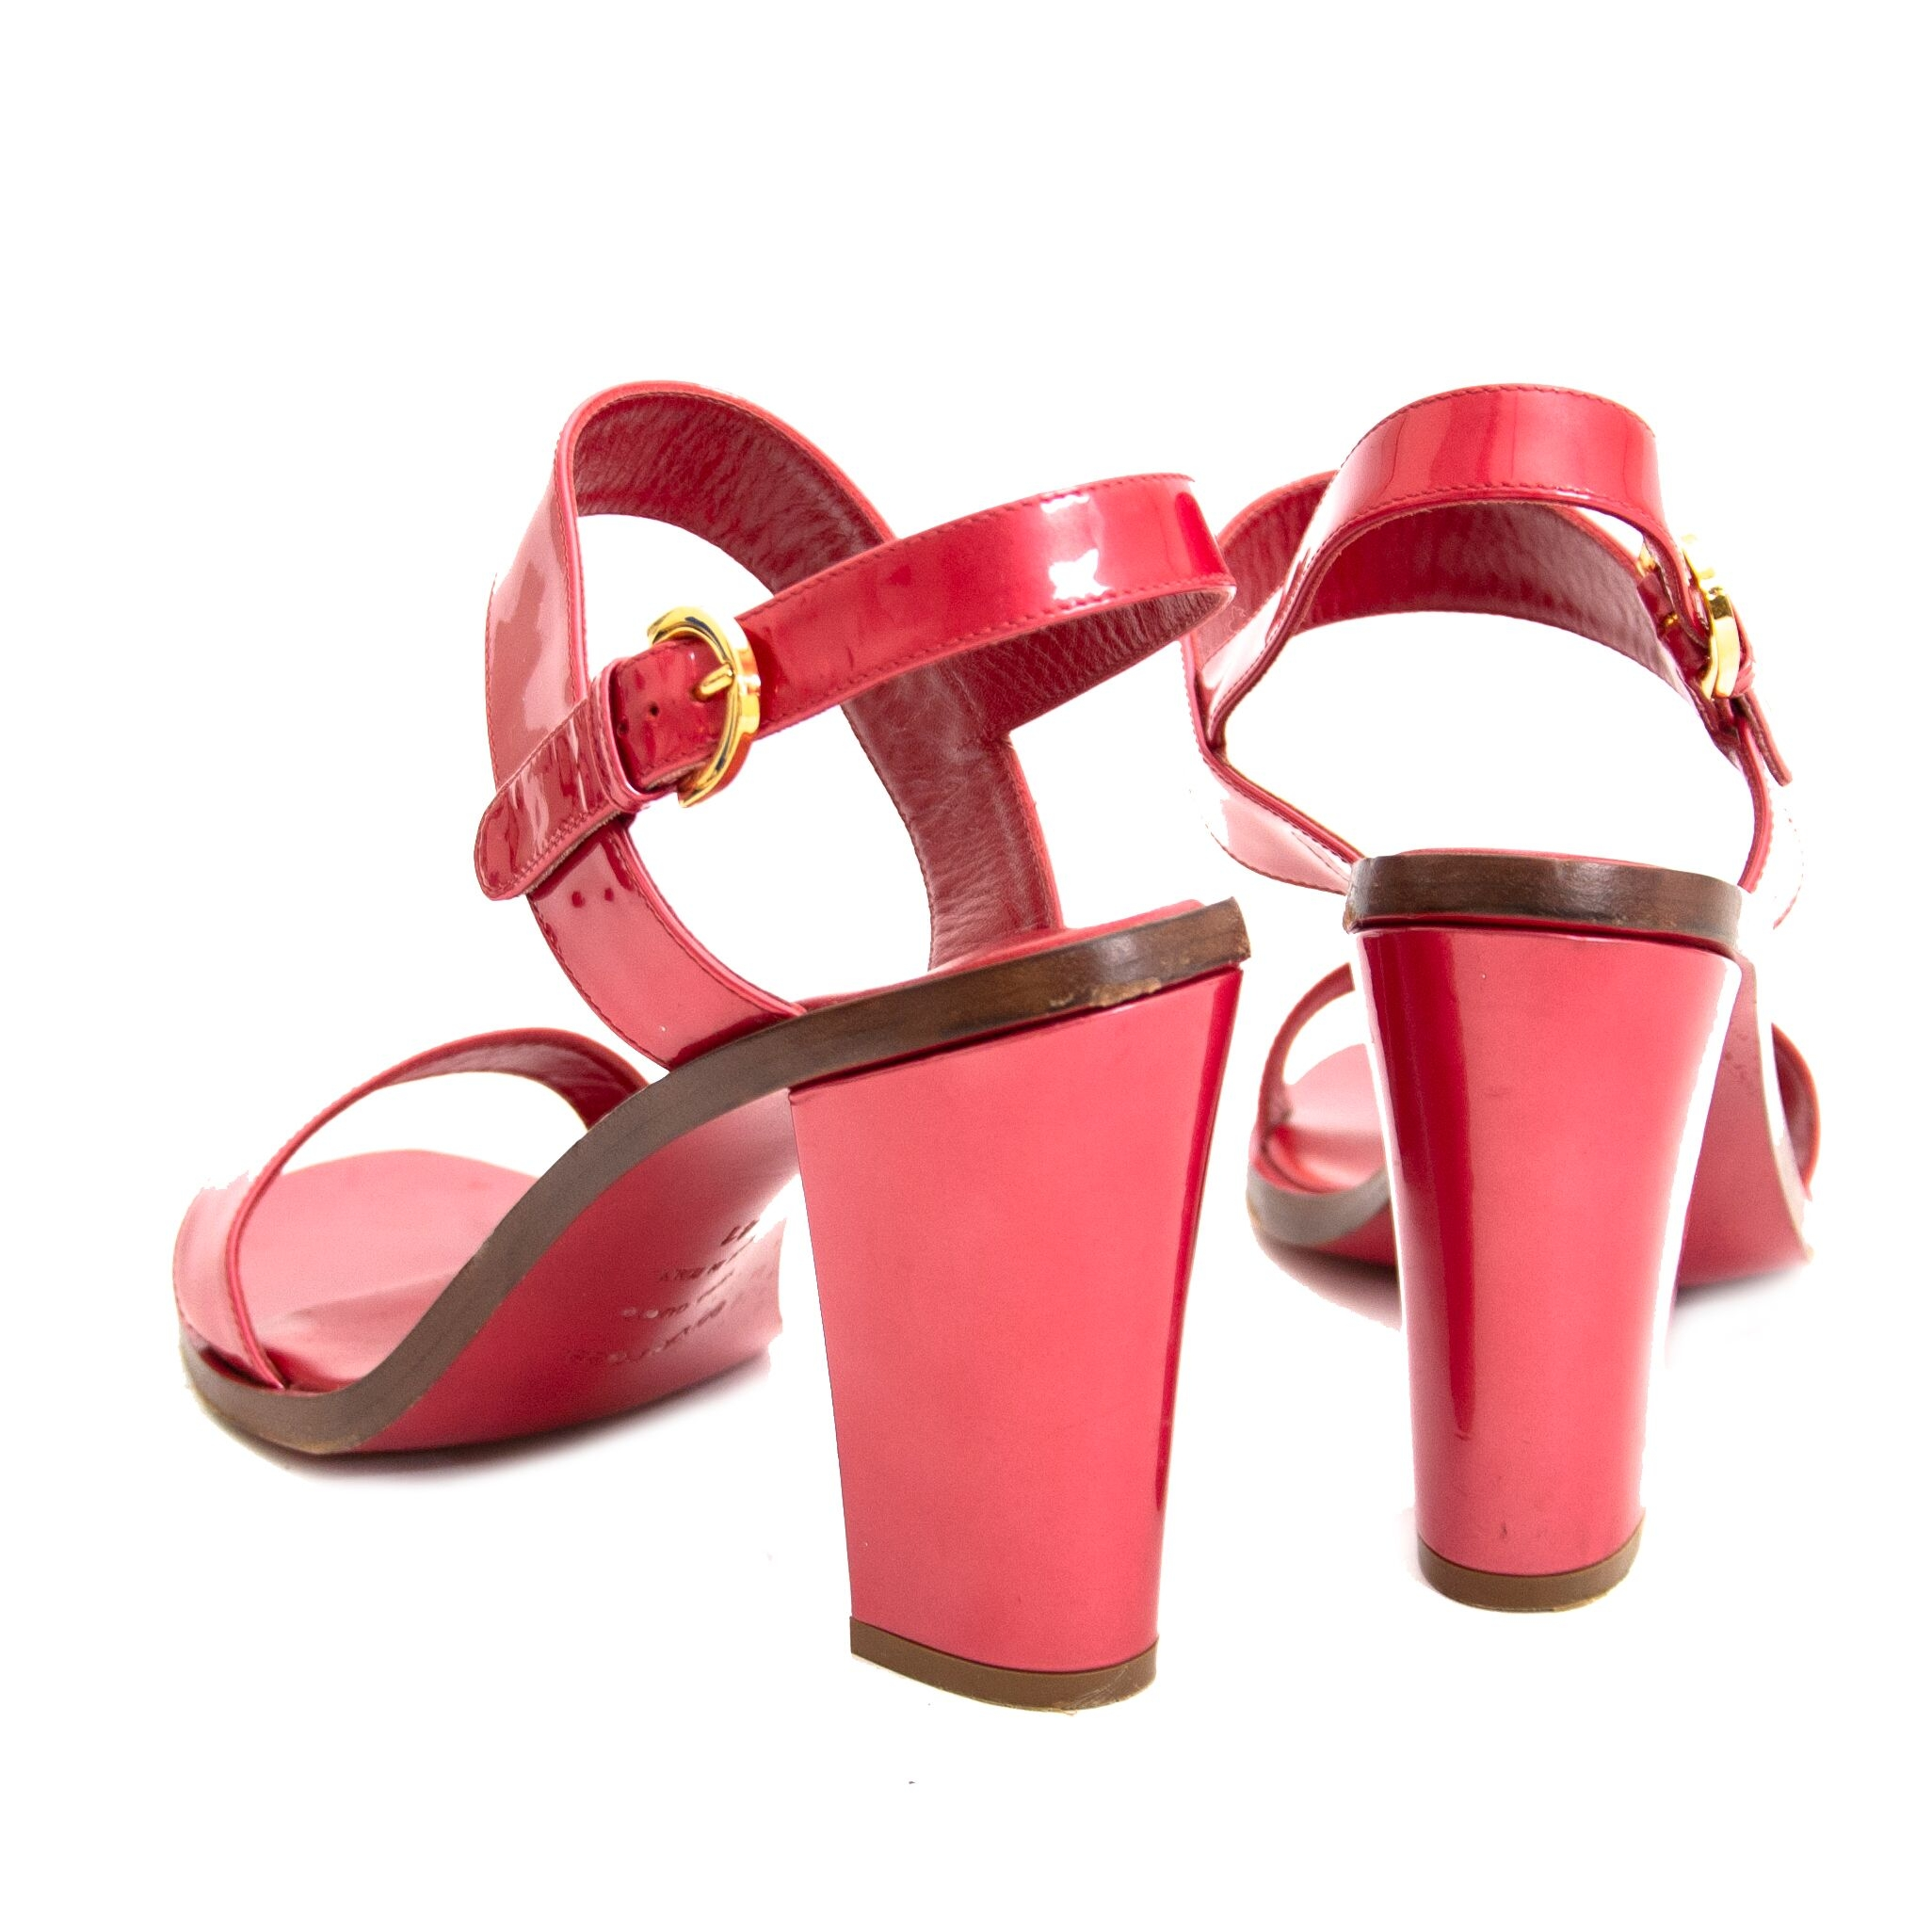 Buy authentic second hand Sergio Rossi Red Sandals with heel at online webshop LabelLOV